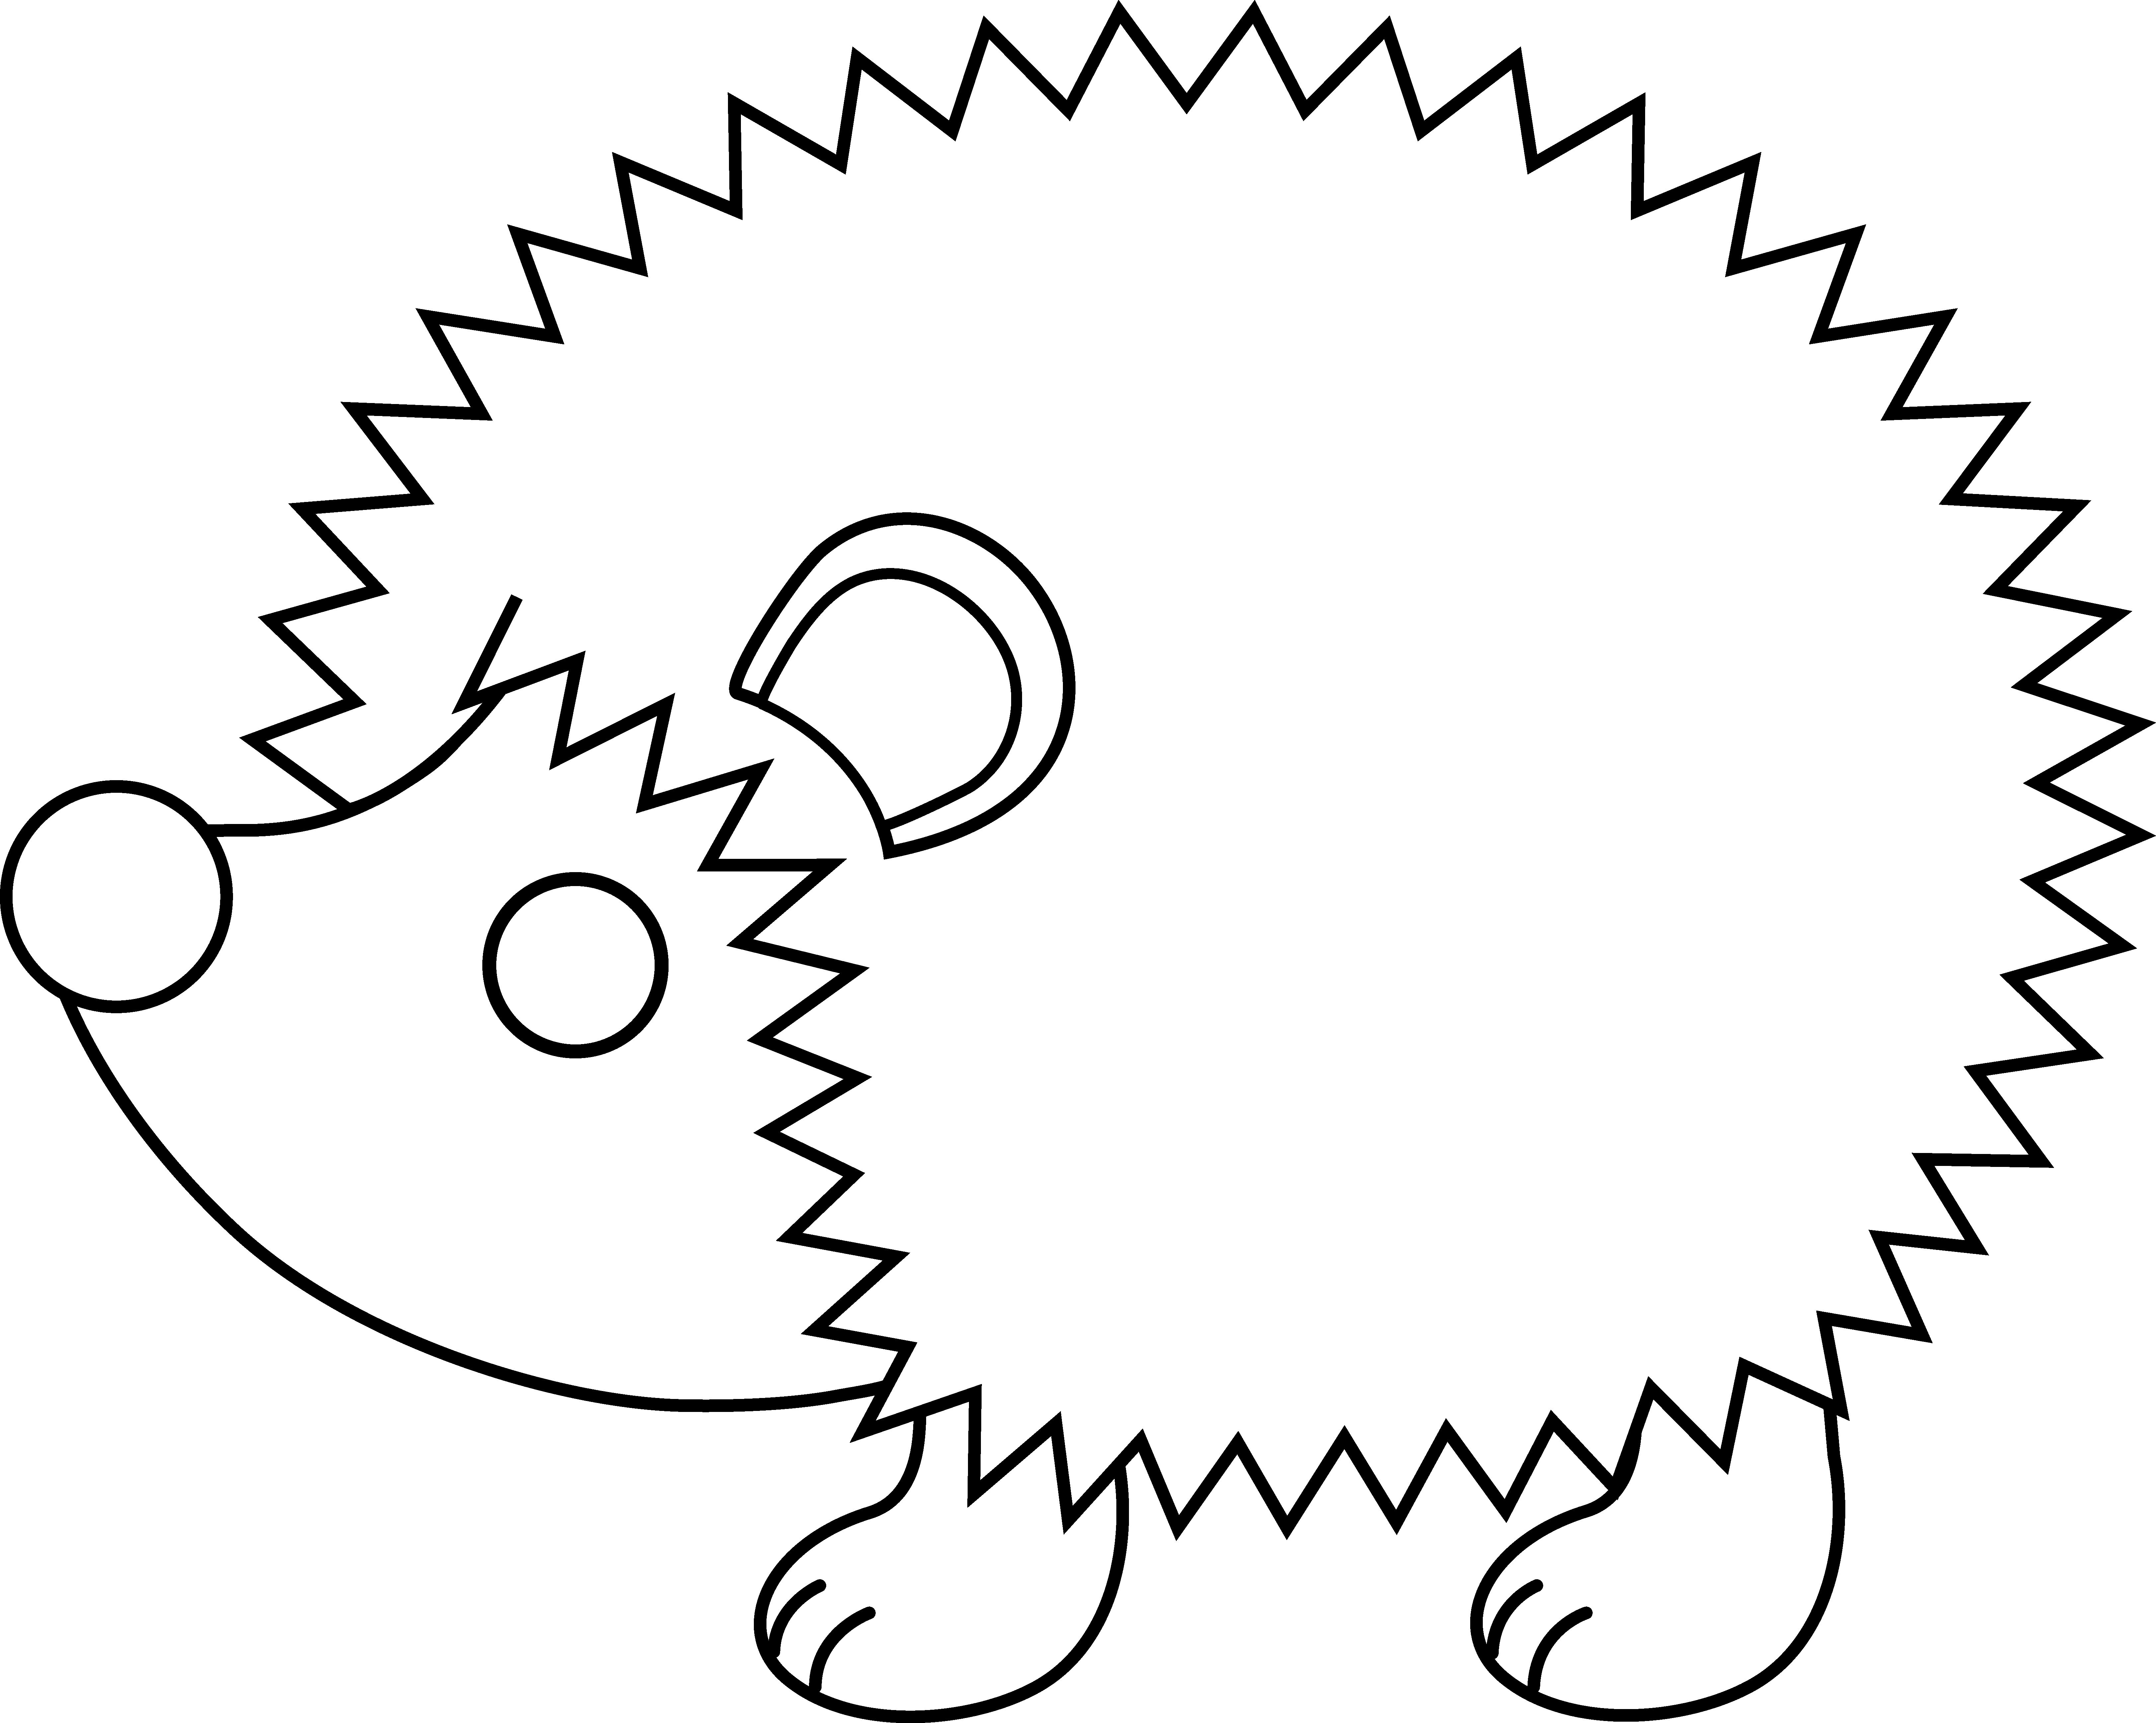 Hedgehog clipart hedgehog outline. Clip art library